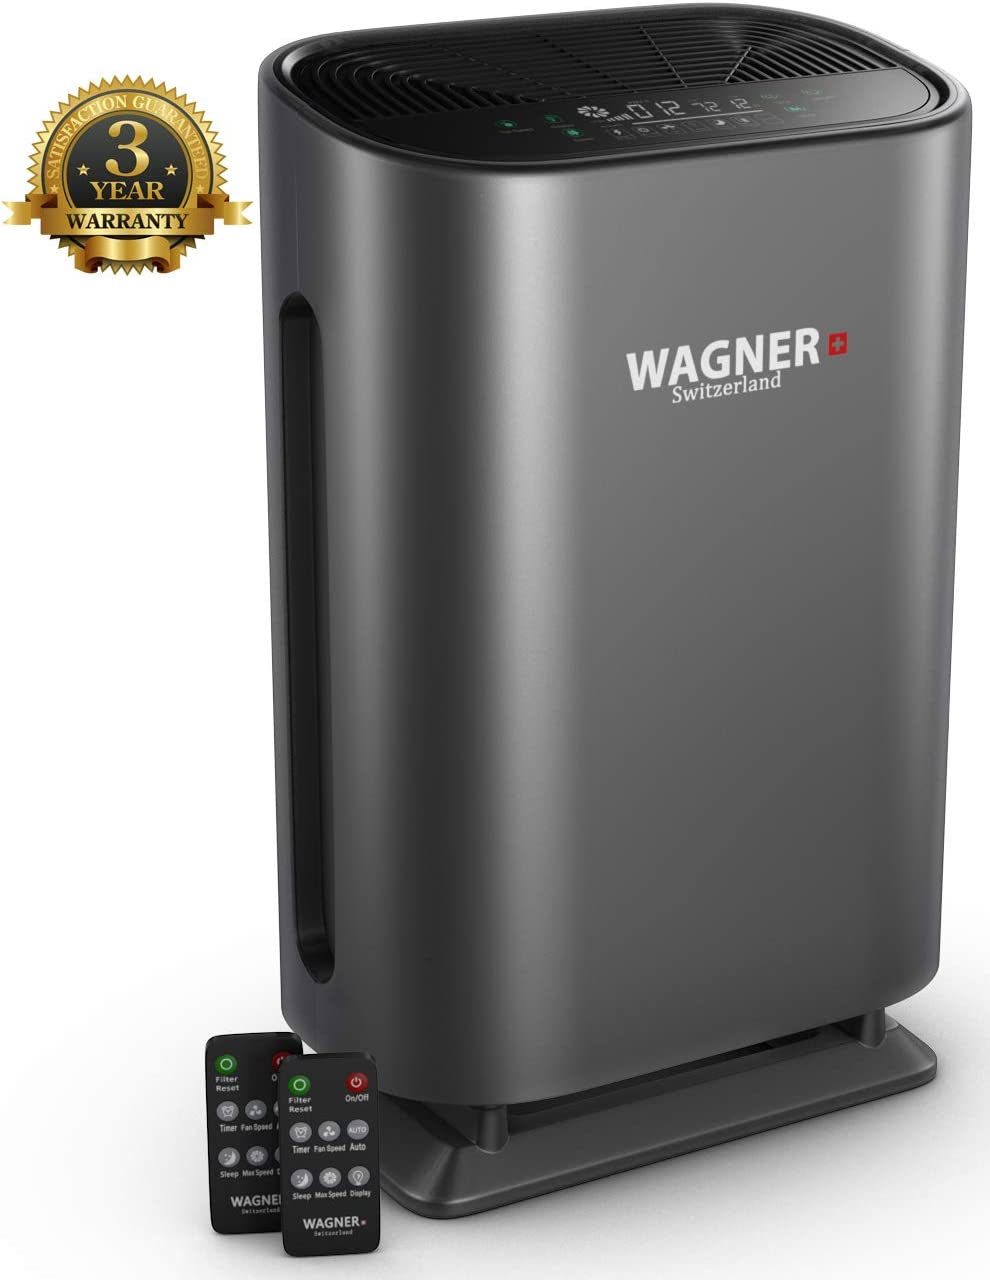 WAGNER Switzerland Air Purifier WA888 HEPA-13 Medical Grade Filter, Particle Sensor for 500'sq.ft. Rooms. Removes Mold, Odors, Smoke, Allergens, Germs and Pet Dander, etc..